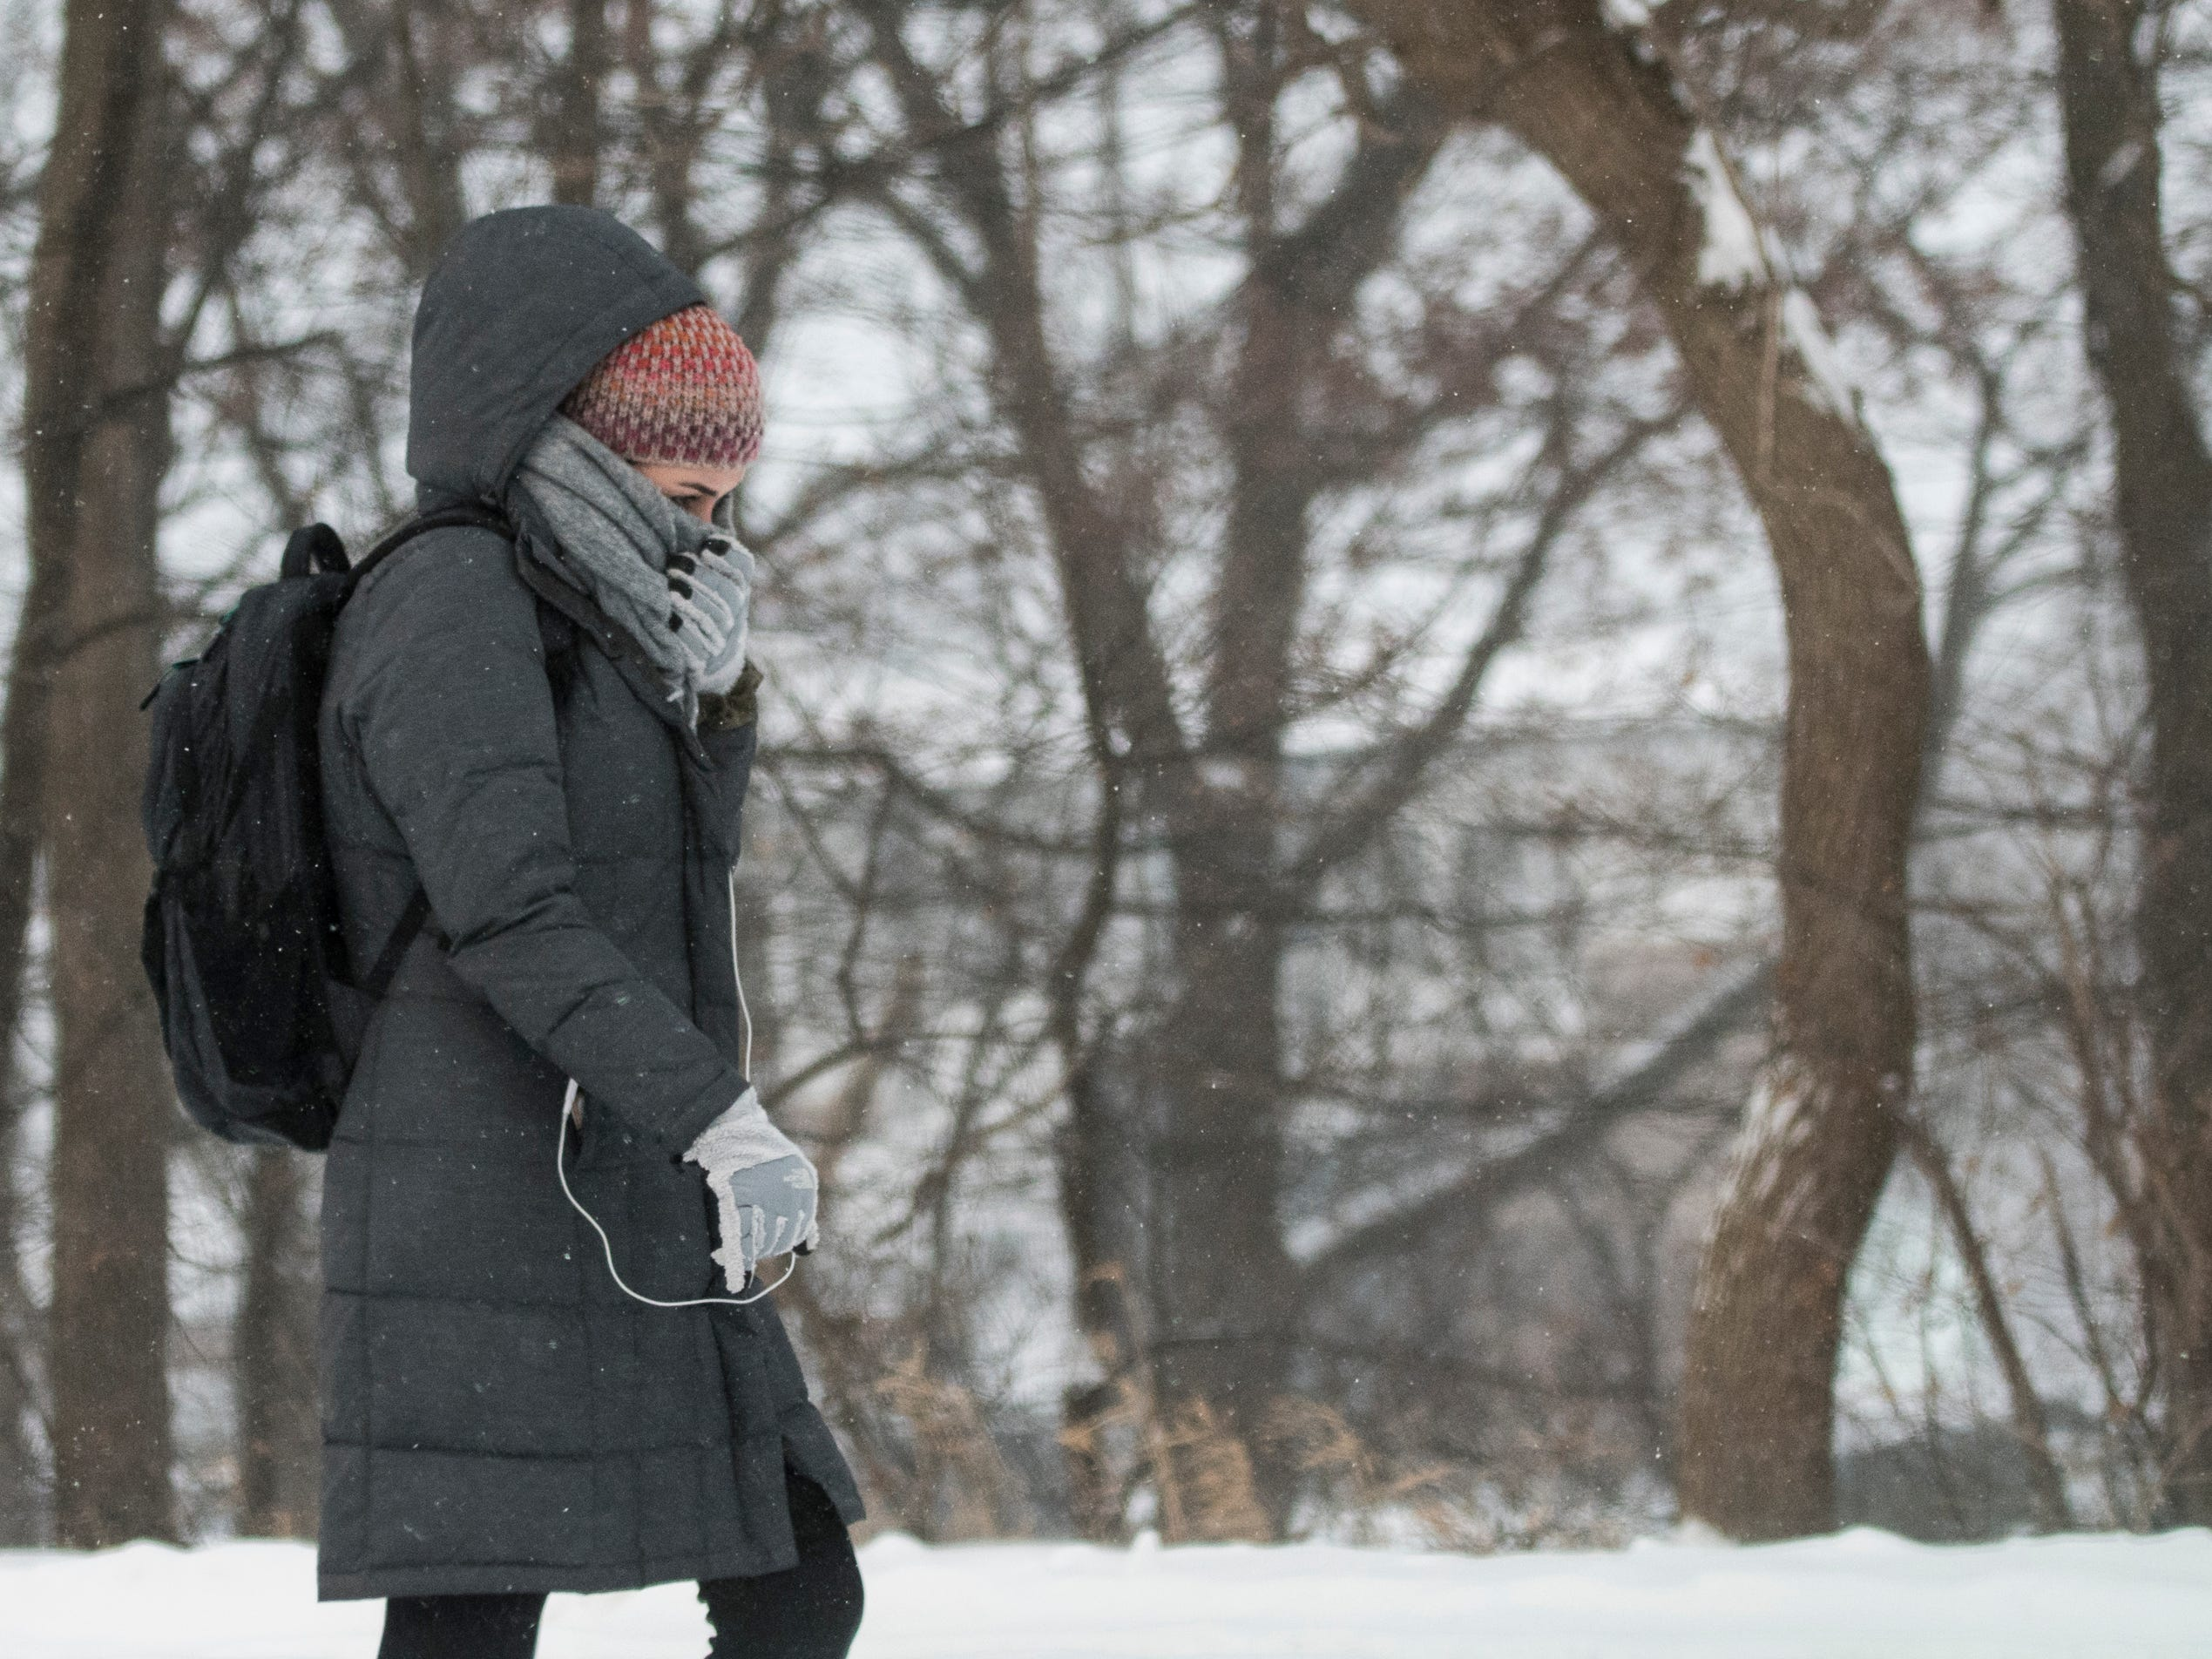 A woman walks on the campus of Michigan State University Tuesday, Jan. 29, 2019, in East Lansing, Michigan.  MSU has called off classes tommorow due to bitter temperatures.  [USA Today Network/Matthew Dae Smith/Lansing State Journal]